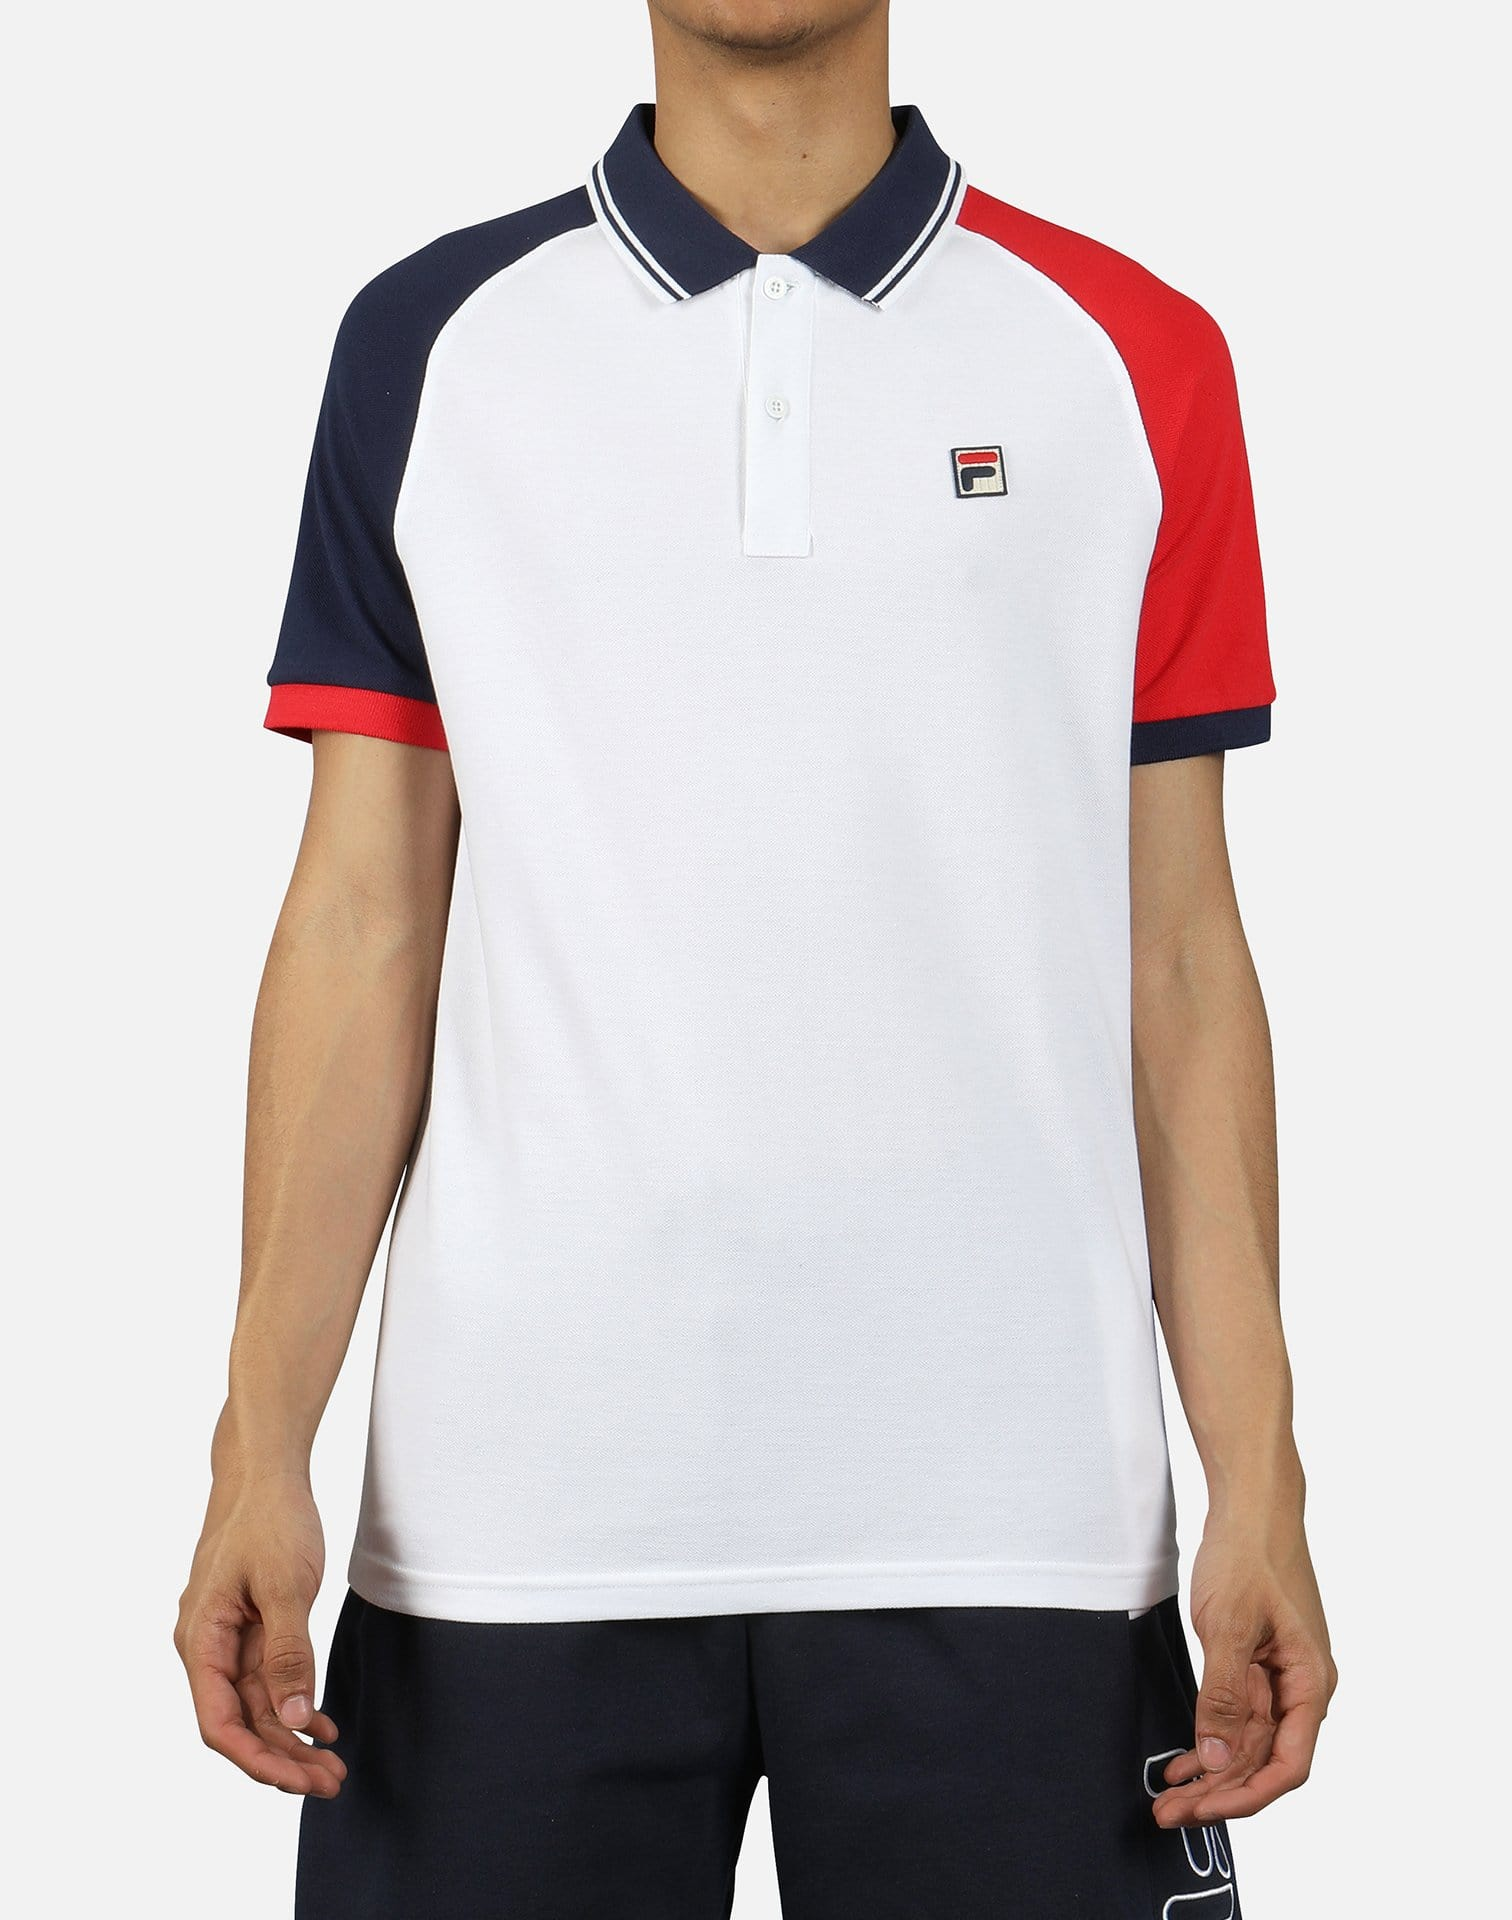 FILA Men's Apollo Polo Shirt